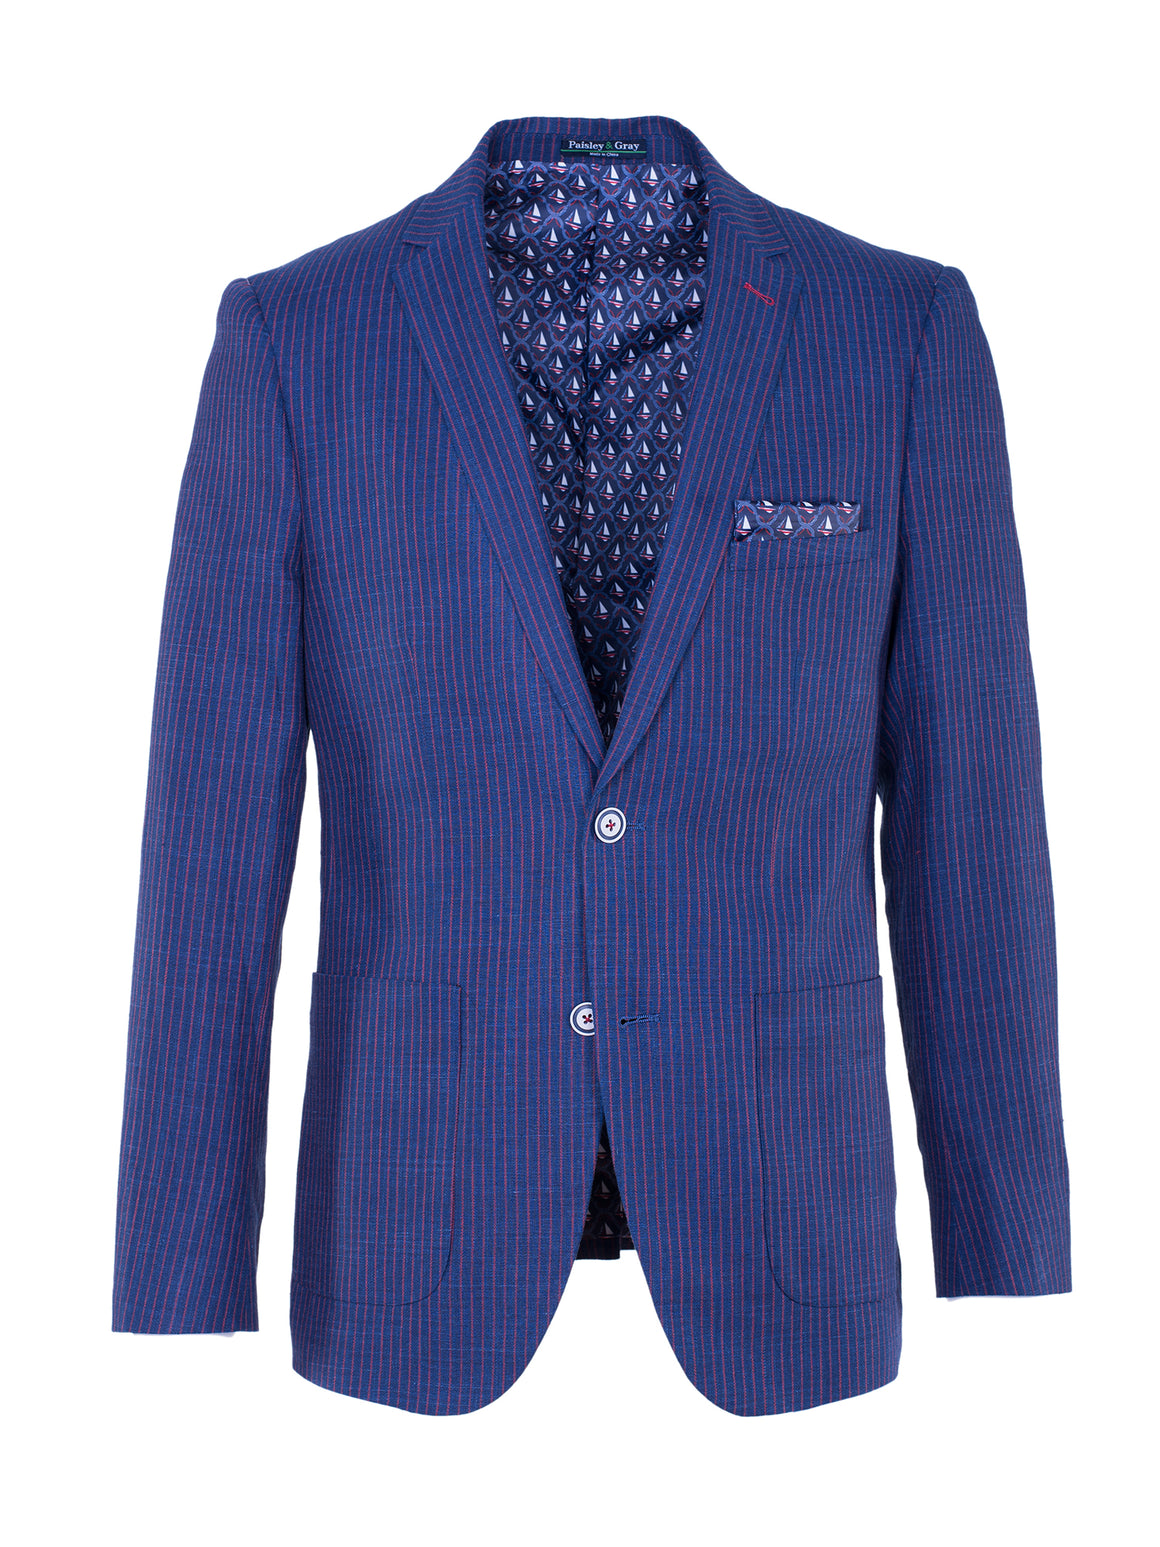 Dover Notch Blazer - Navy & Red Stripe